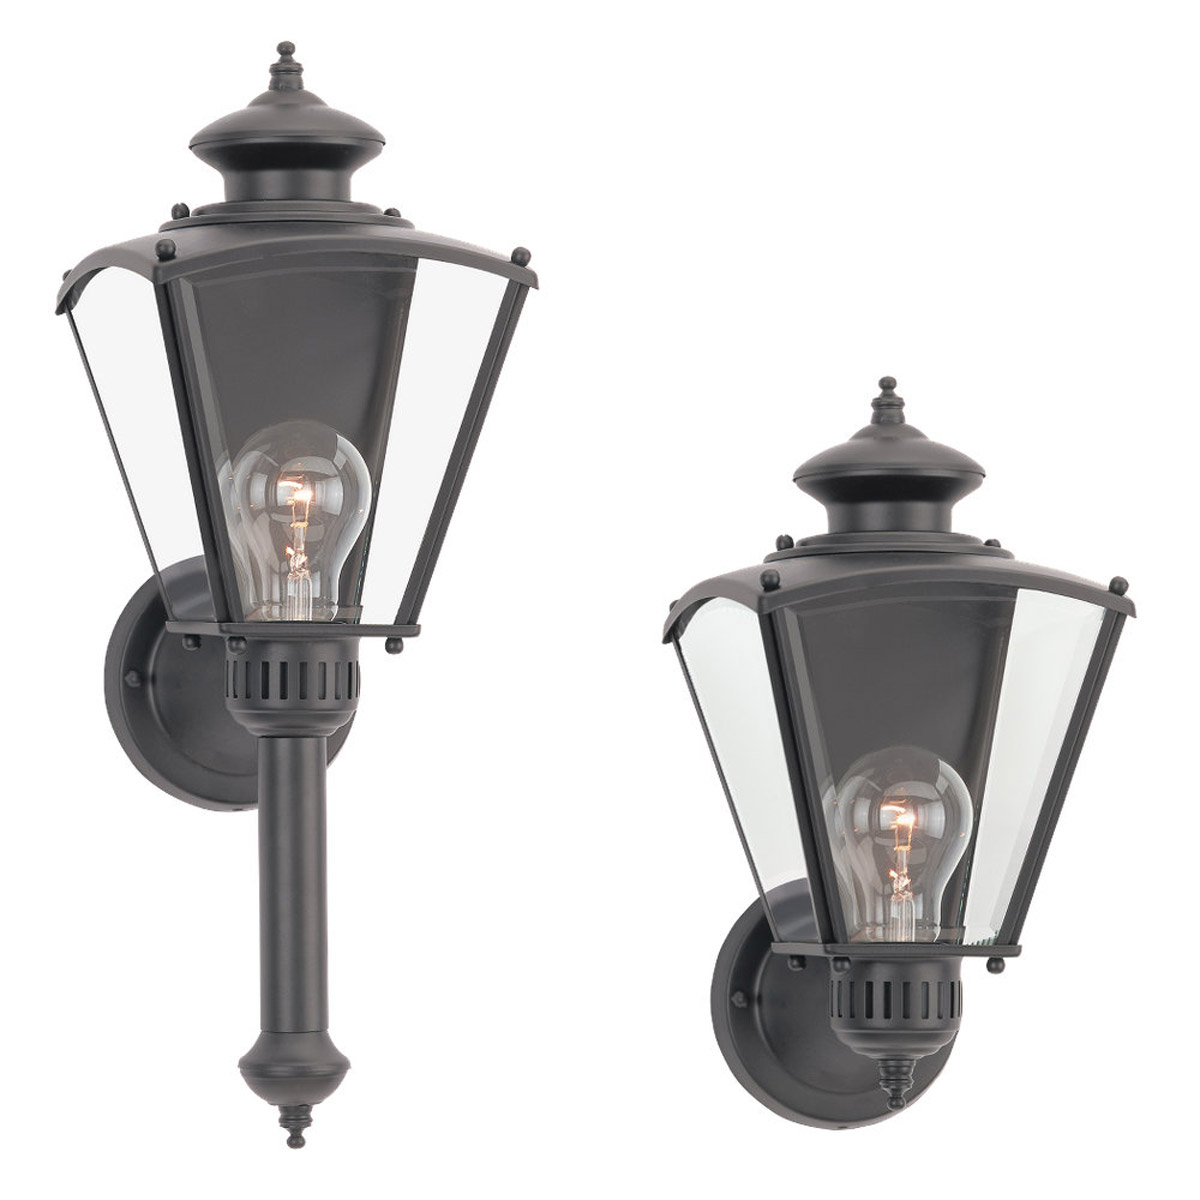 Sea Gull Lighting New Castle 1 Light Outdoor Wall Lantern in Black 8504-12 photo